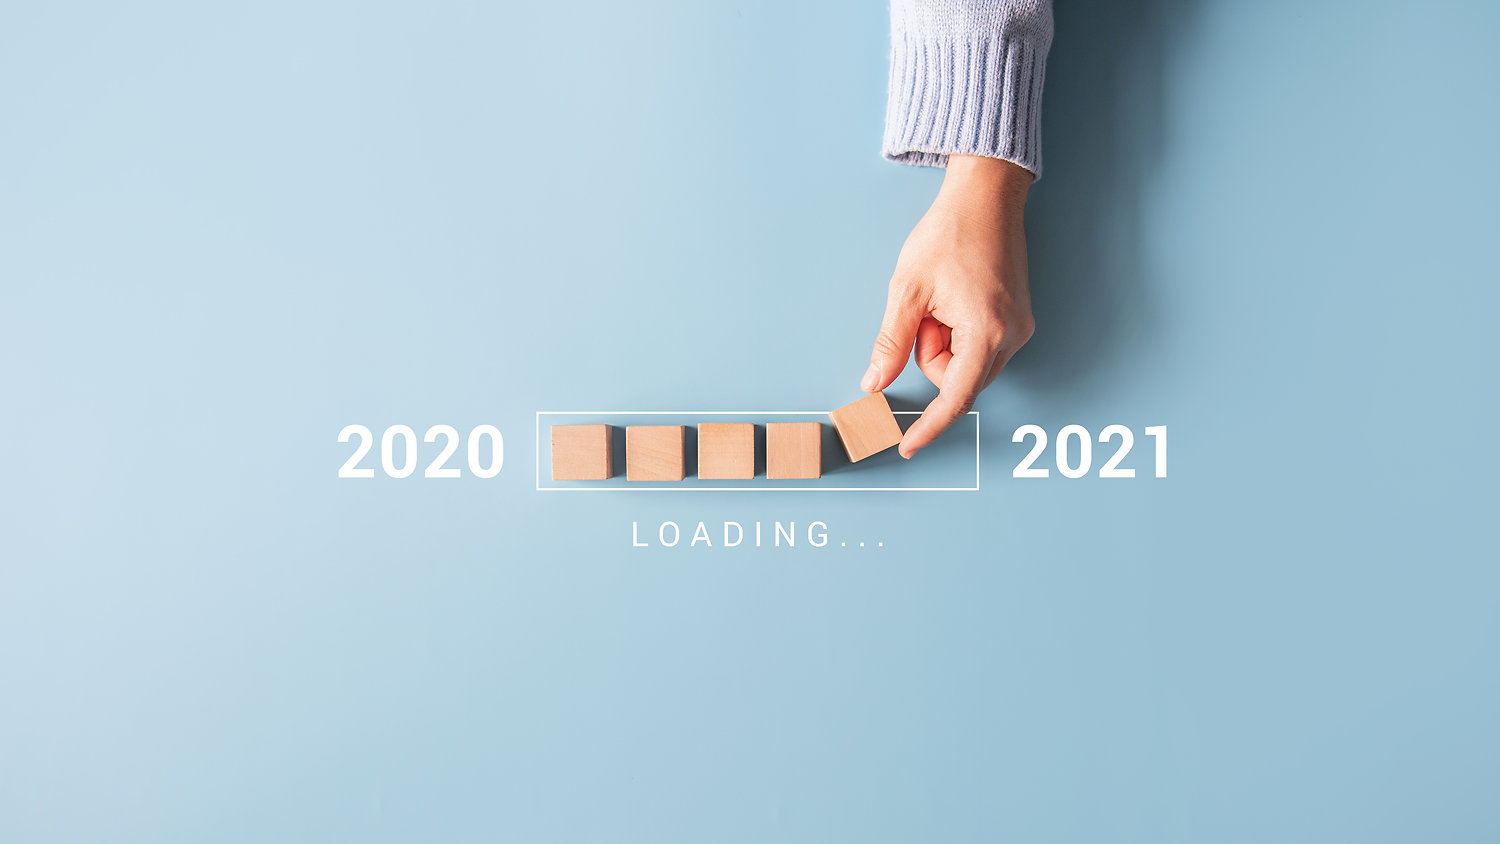 Loading new year 2020 to 2021 with hand